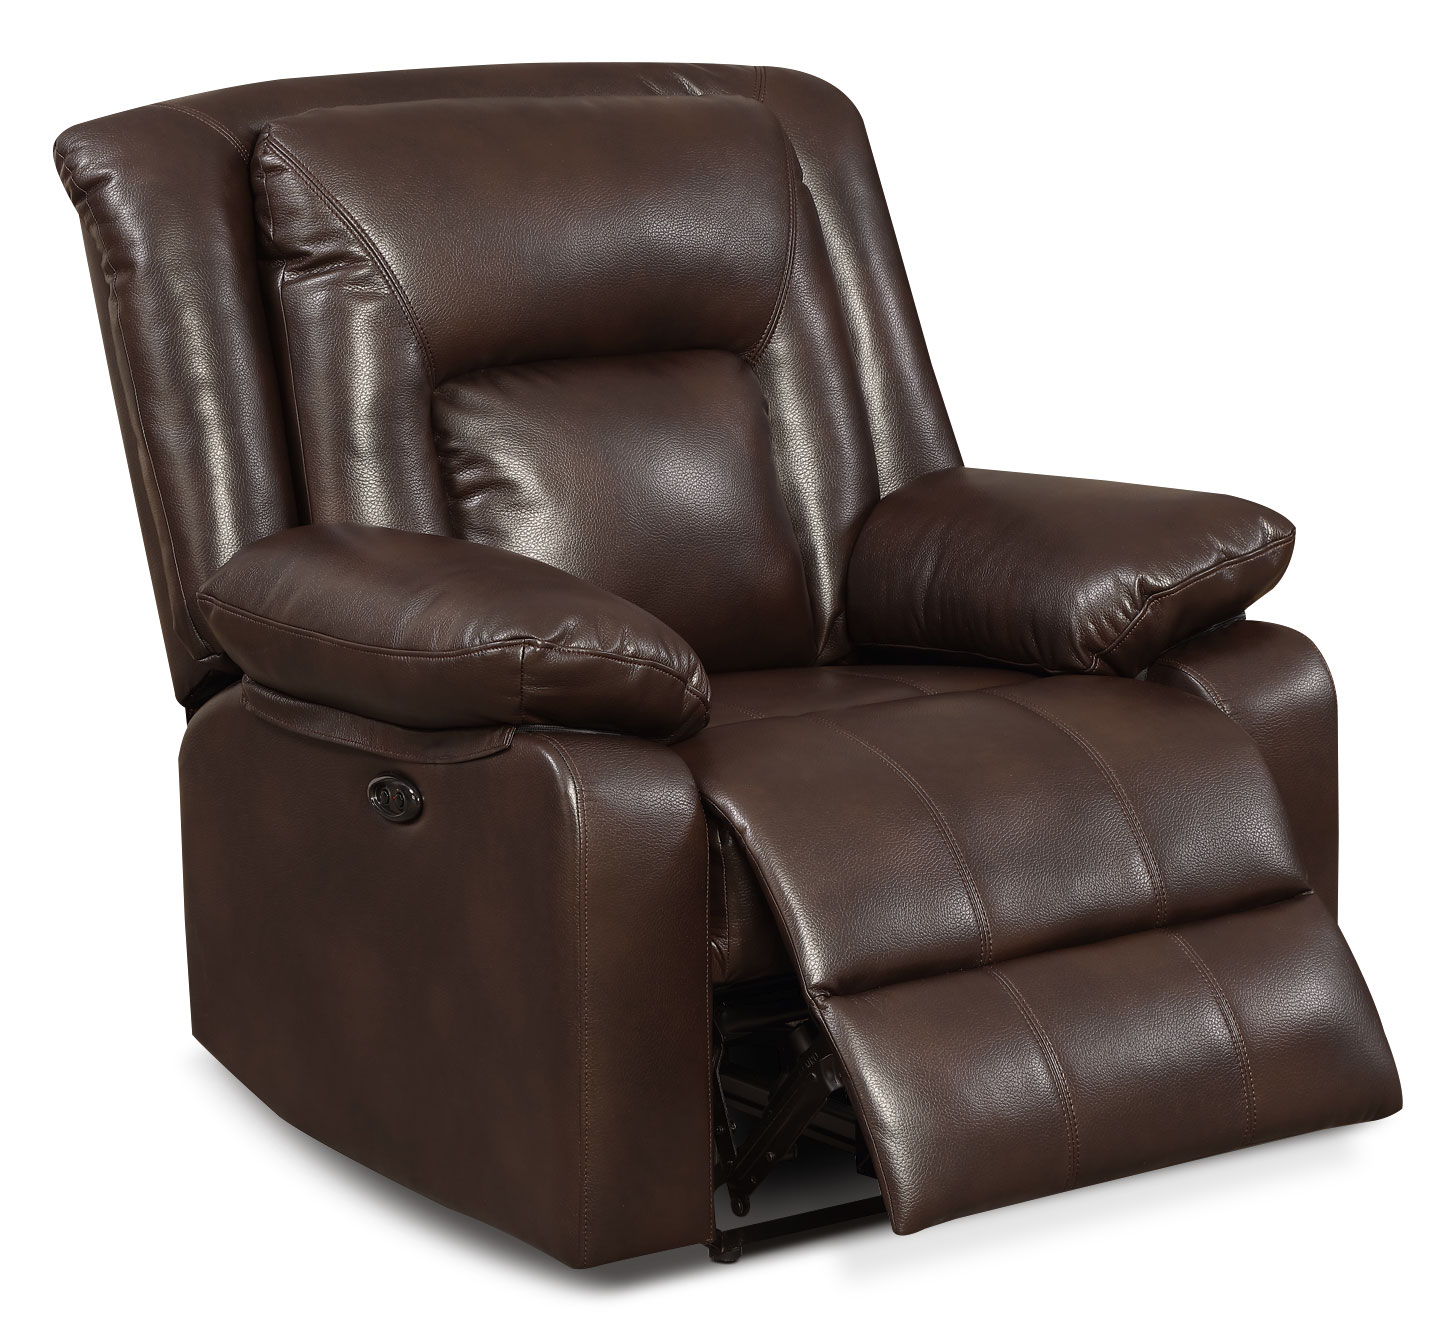 Living Room Furniture - Blane Leather-Look Fabric Power Reclining Chair – Brown